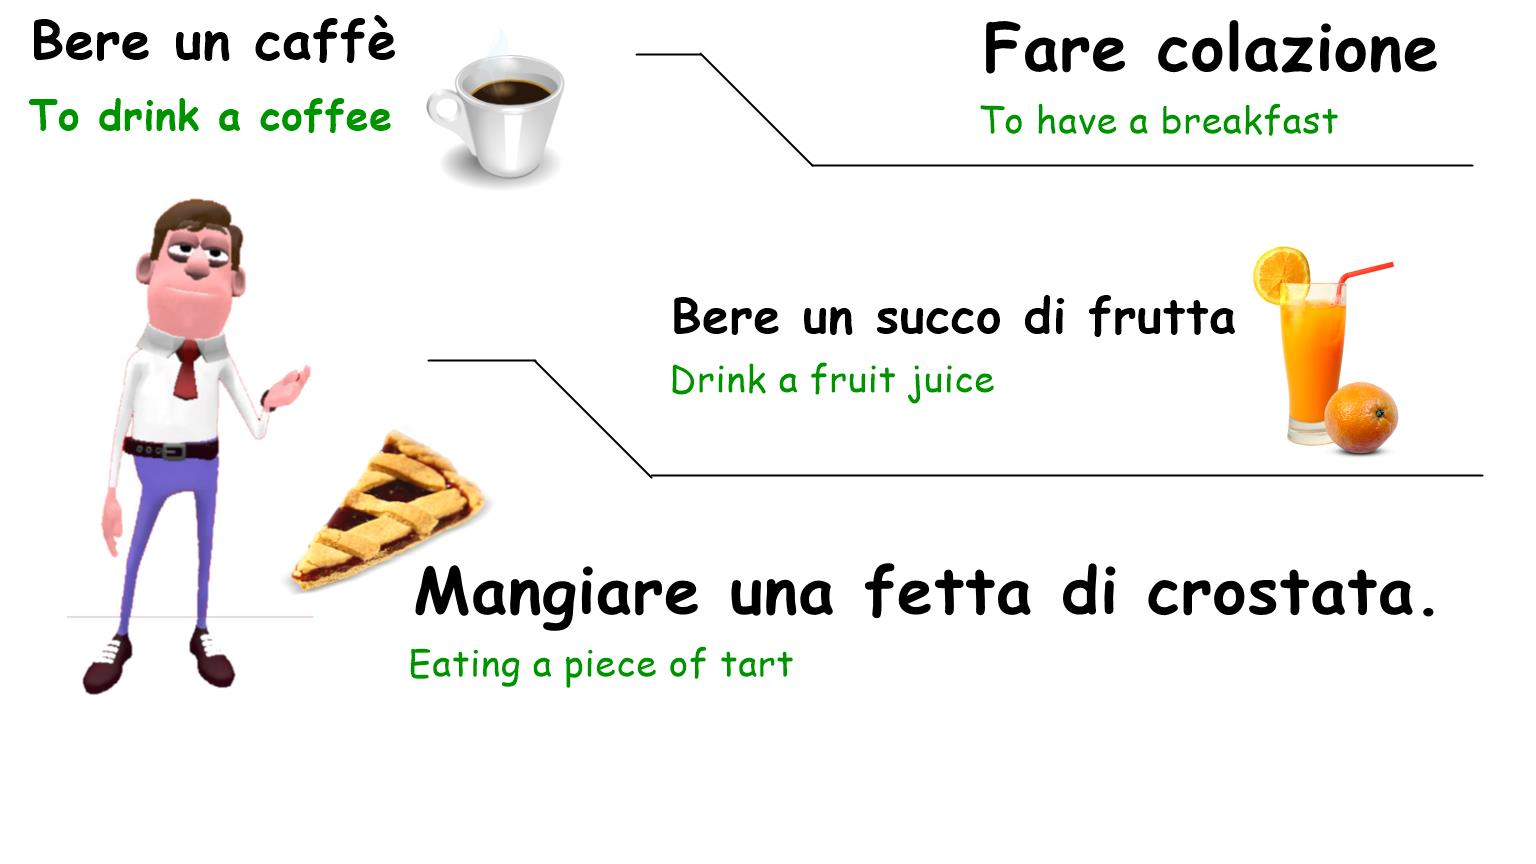 daily routine how to describe your typical day in italian daily routine in italian fare colazione